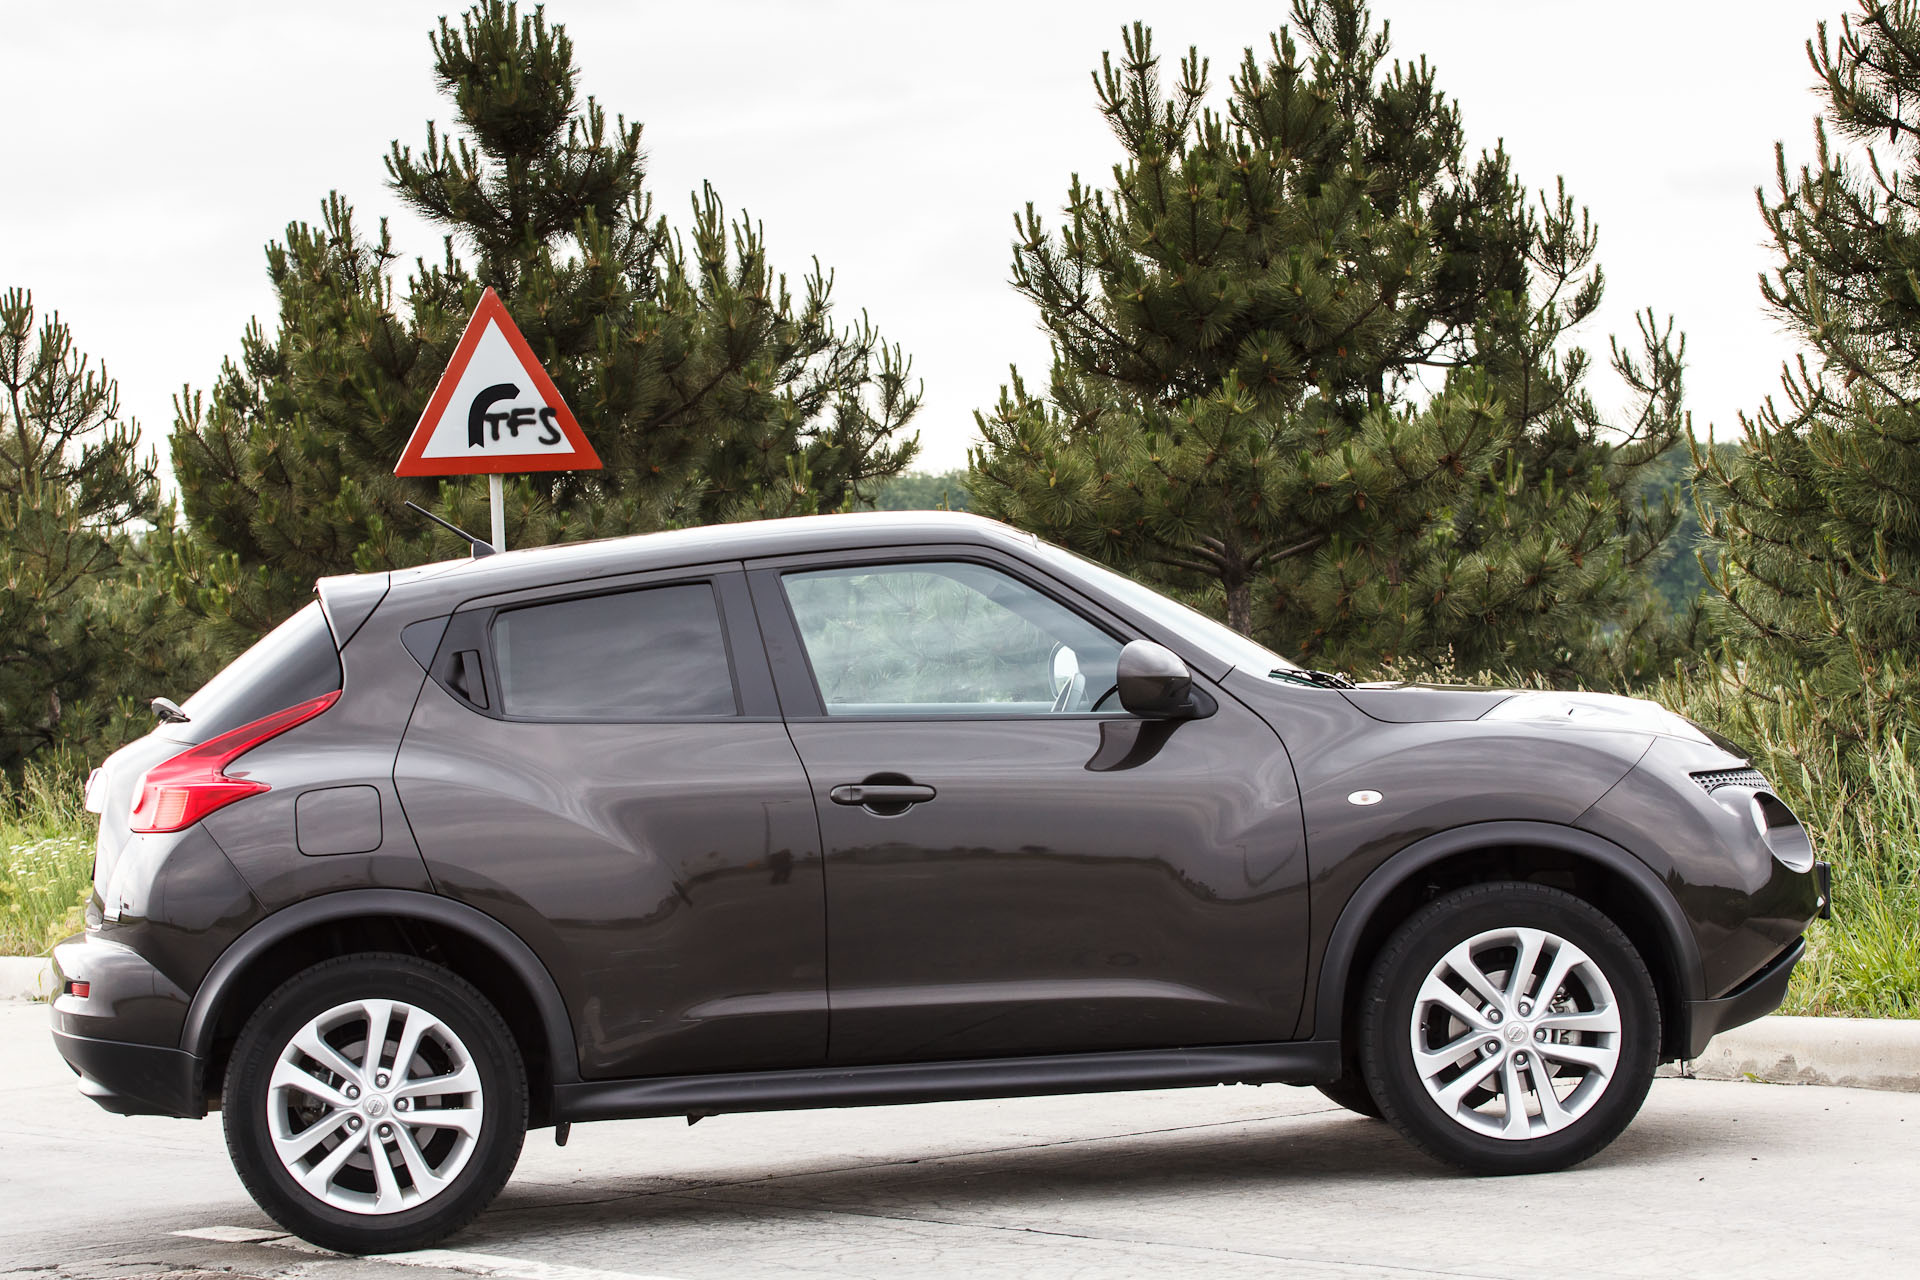 drive test nissan juke 1 5 dci motorsport news. Black Bedroom Furniture Sets. Home Design Ideas